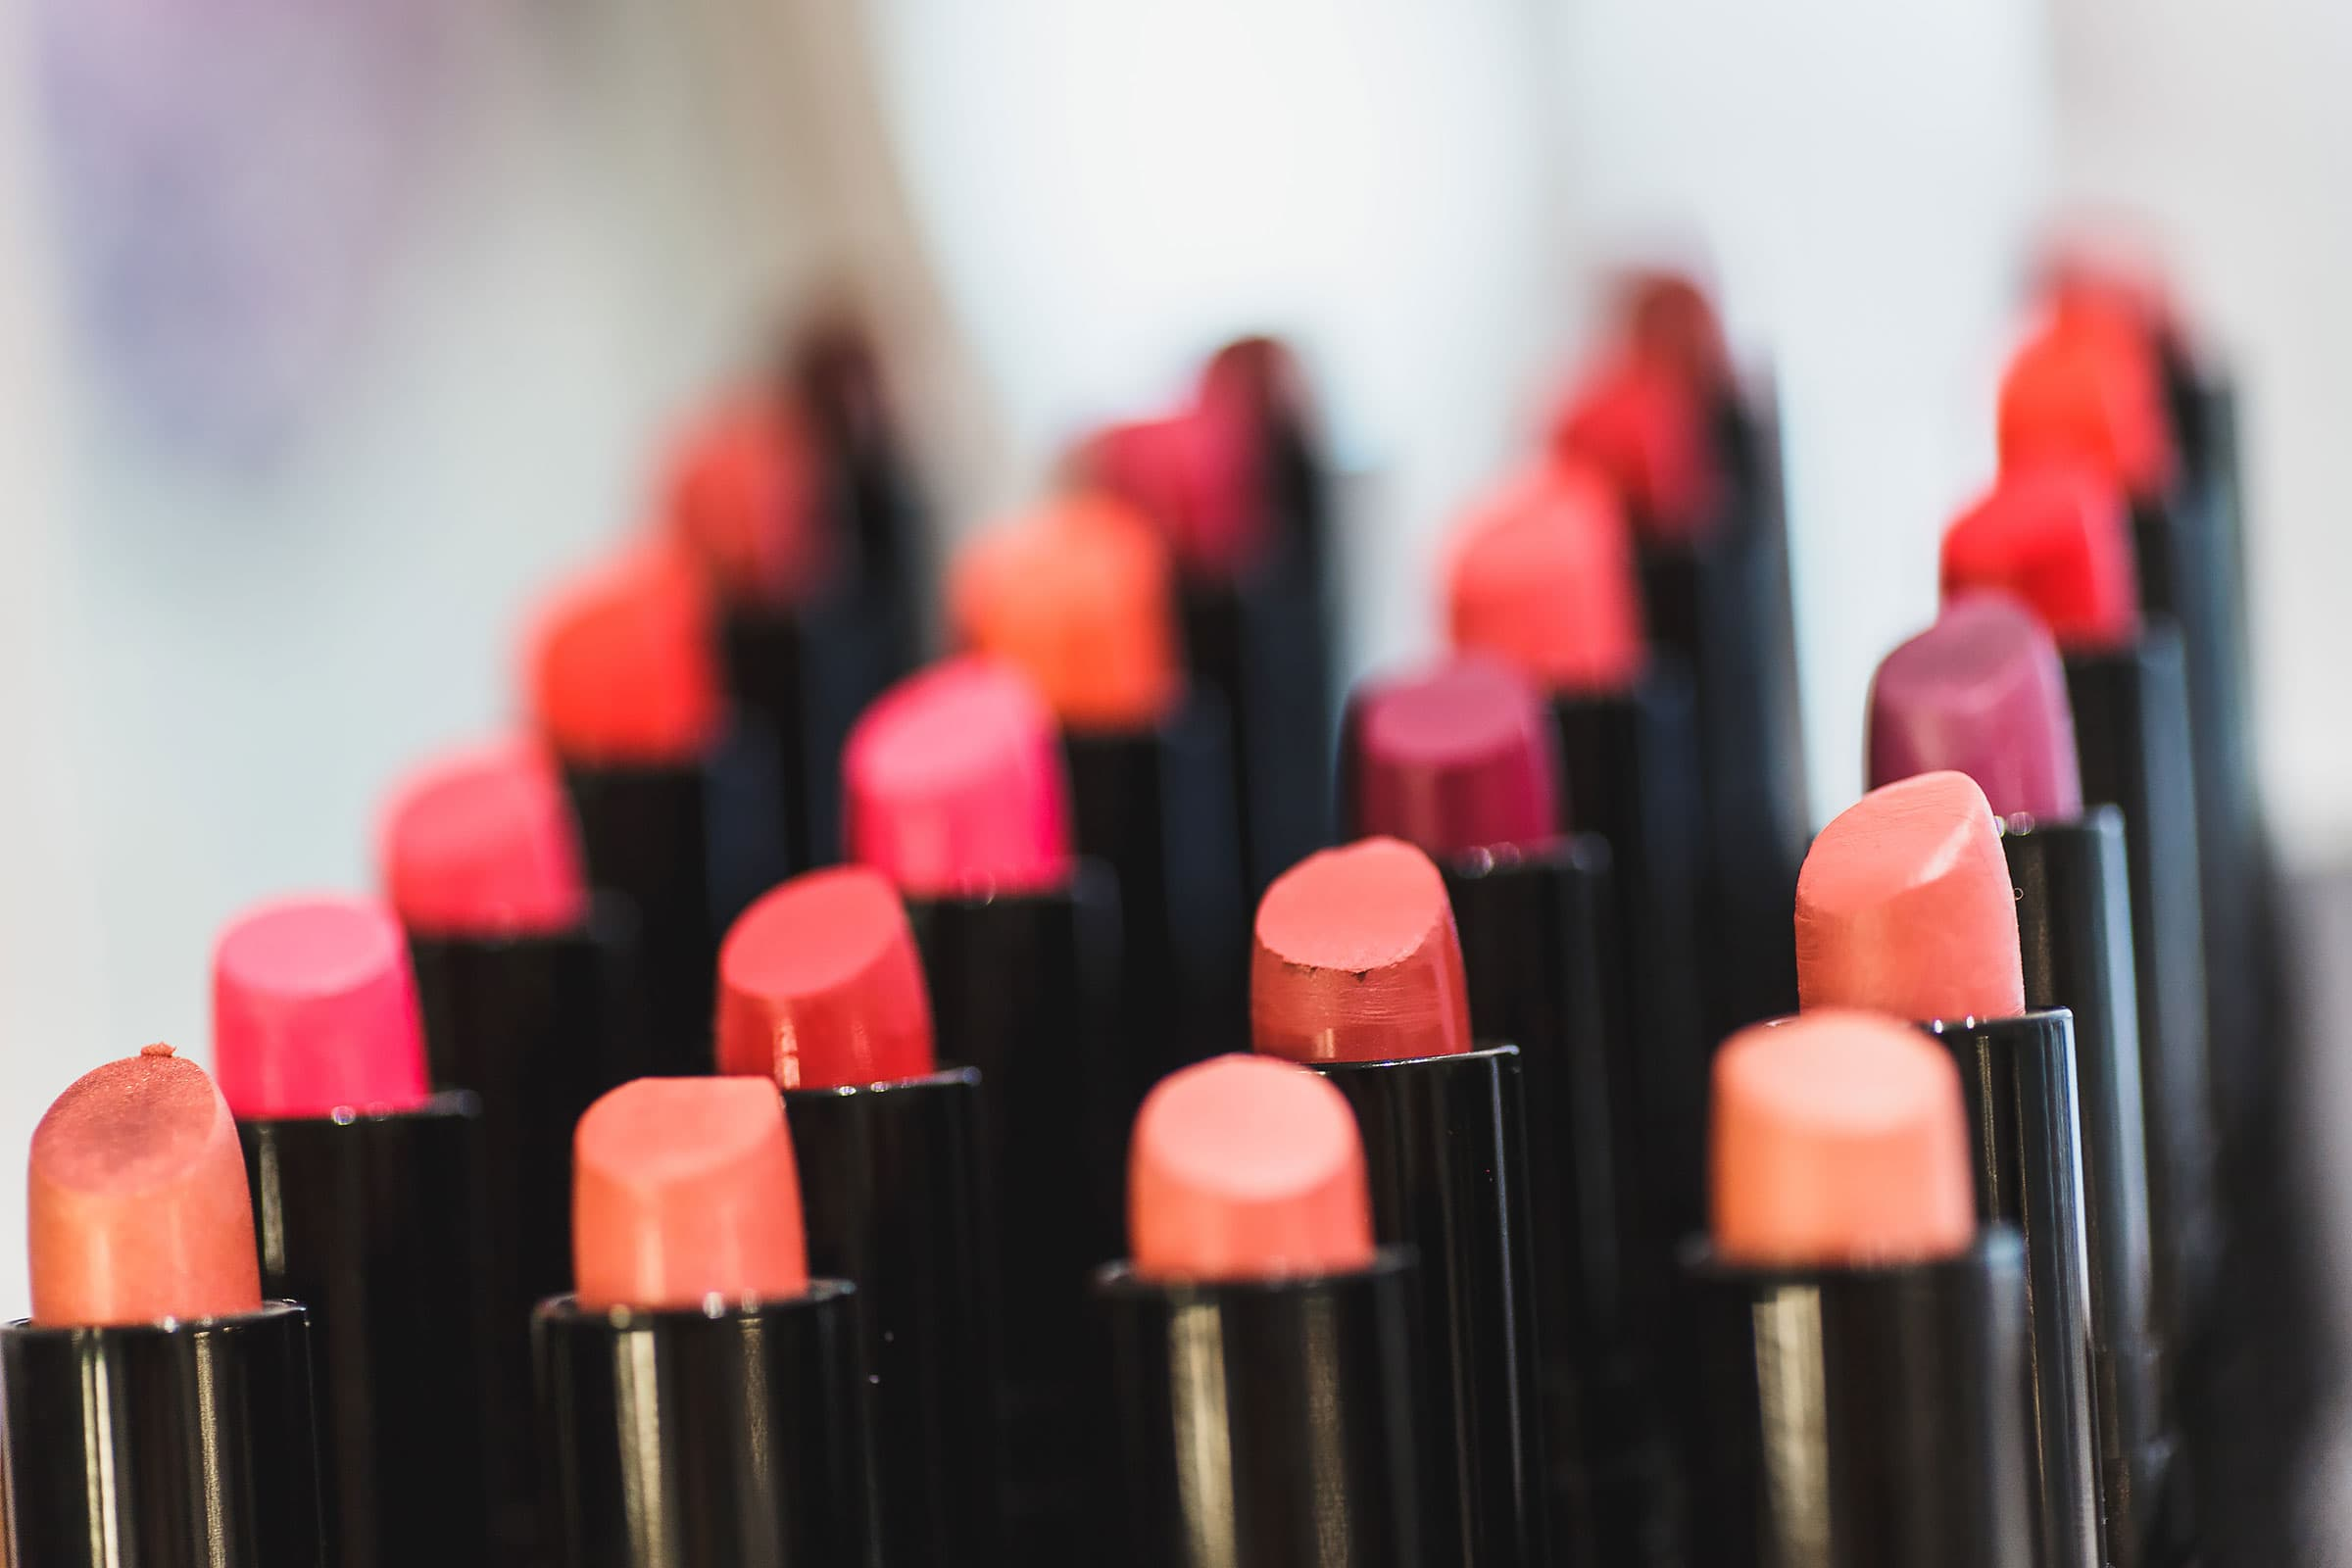 Stockholm's best makeup and cosmetic stores